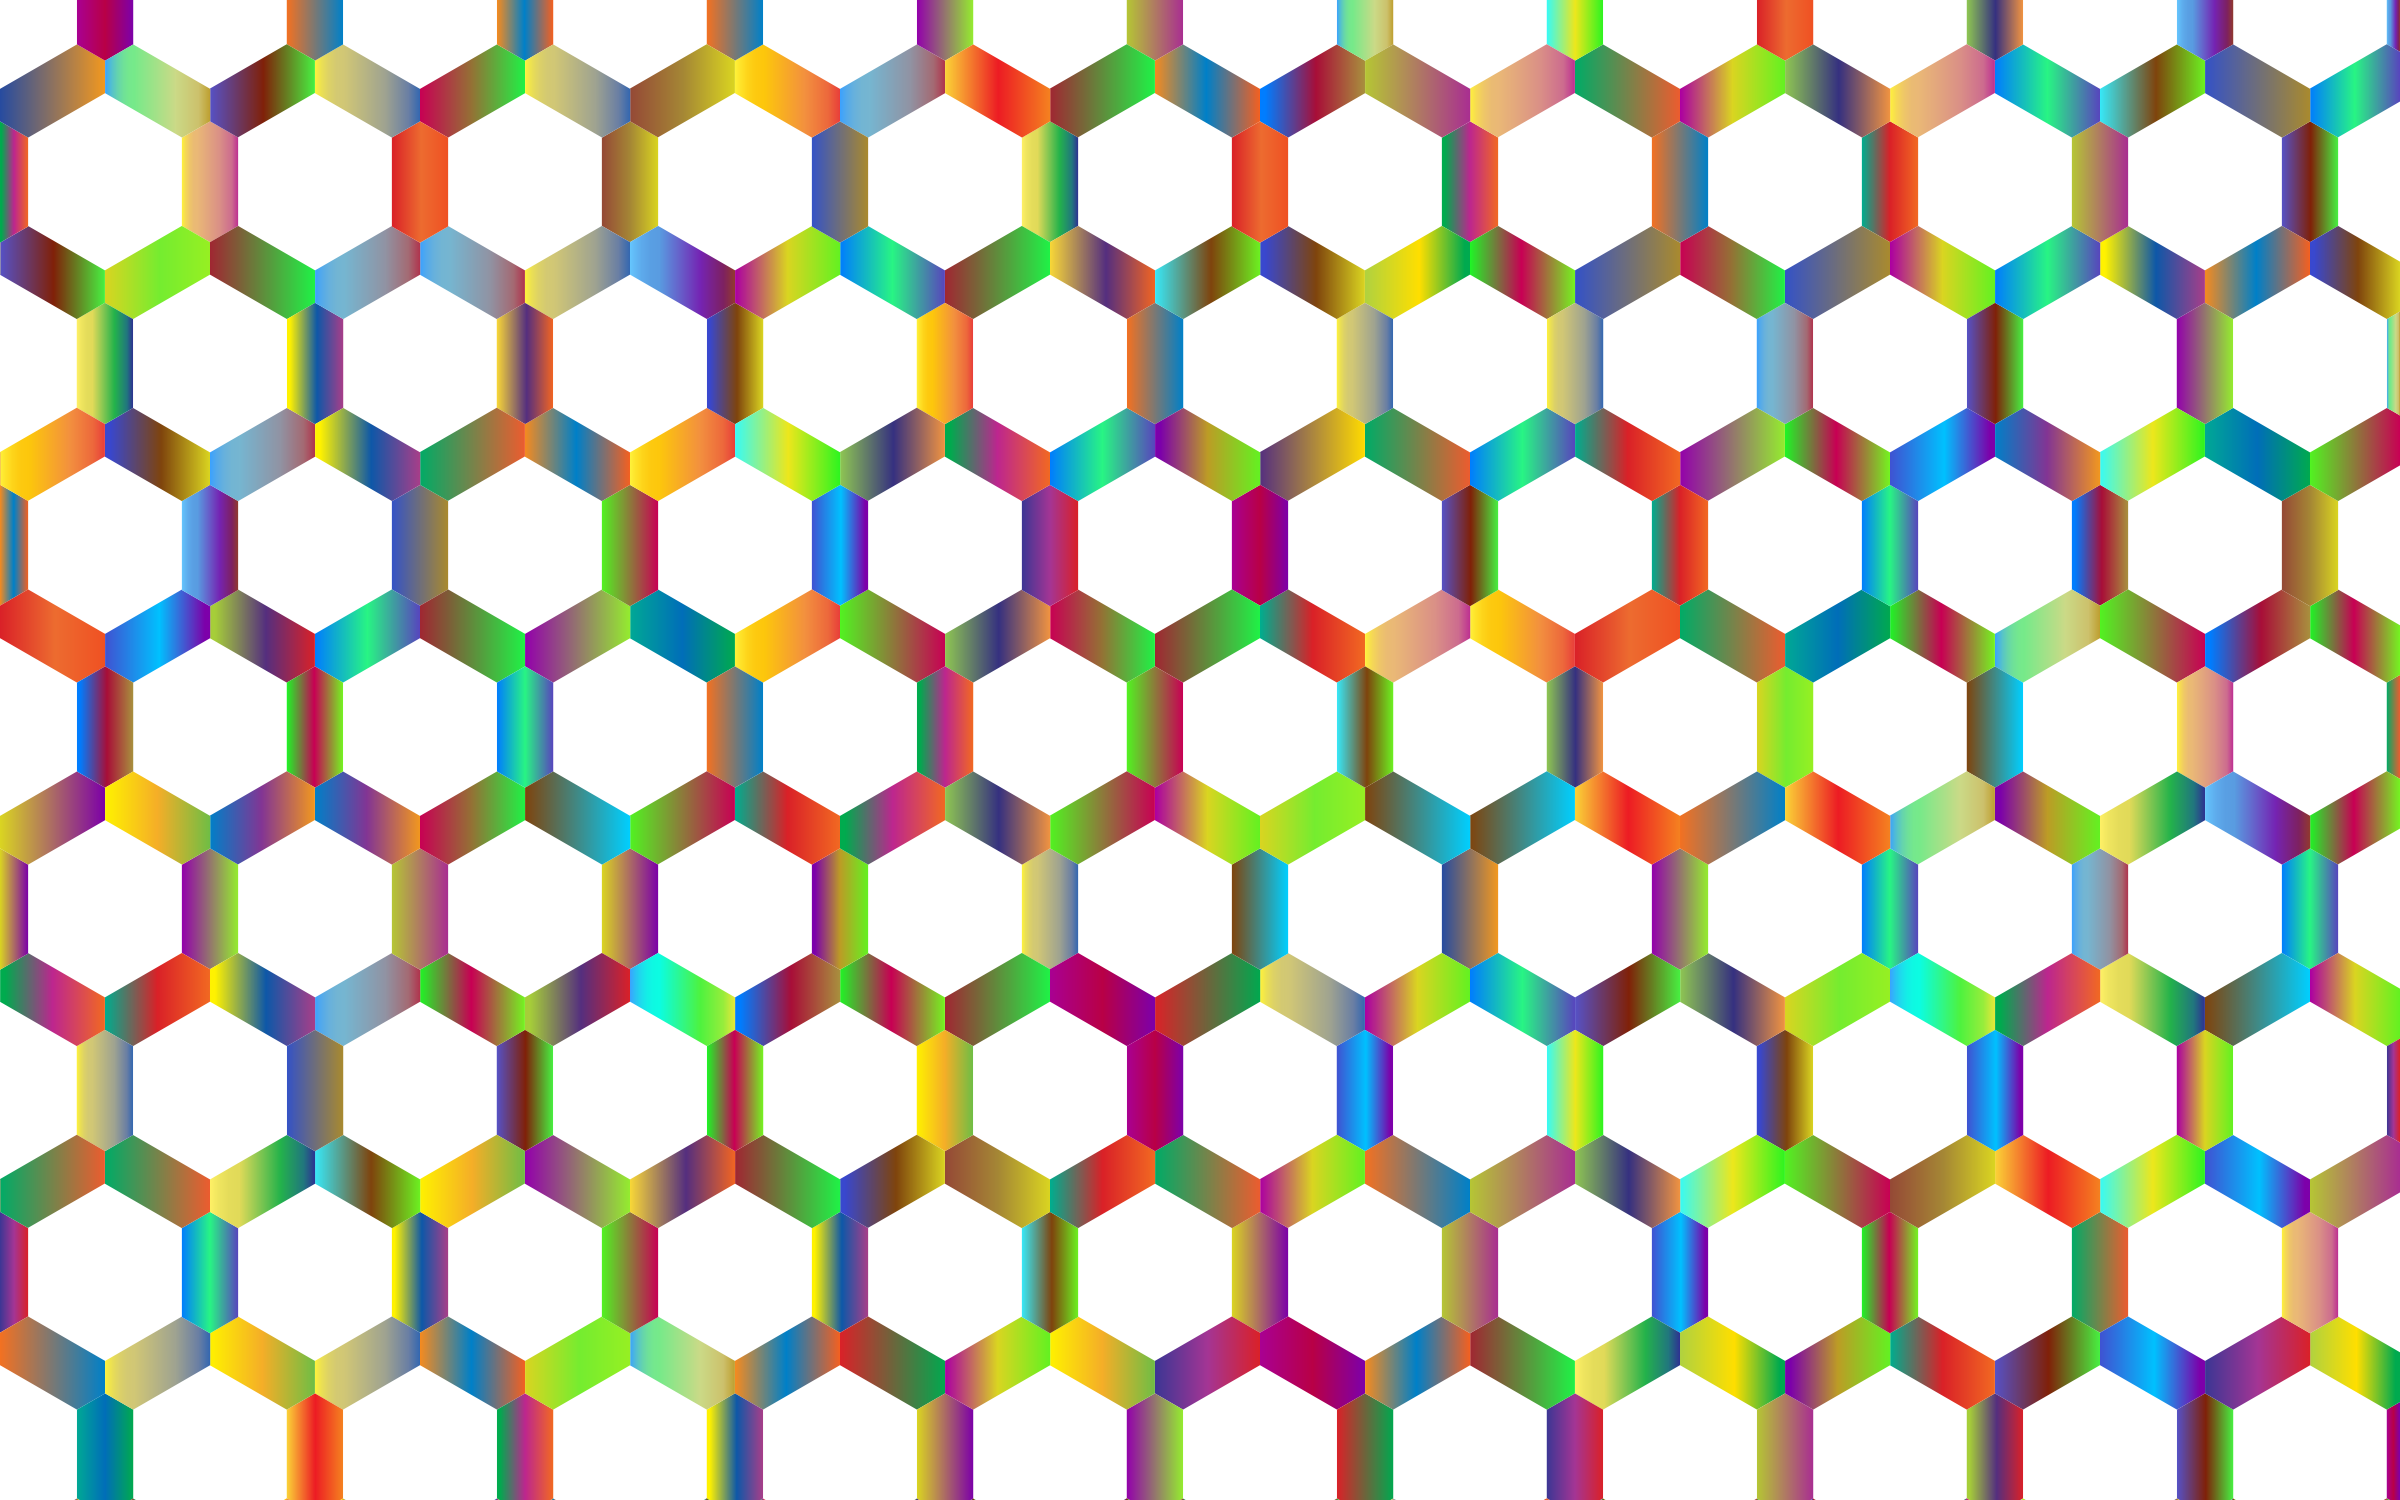 Prismatic Hexagonal Geometric Pattern 3 No Background by GDJ